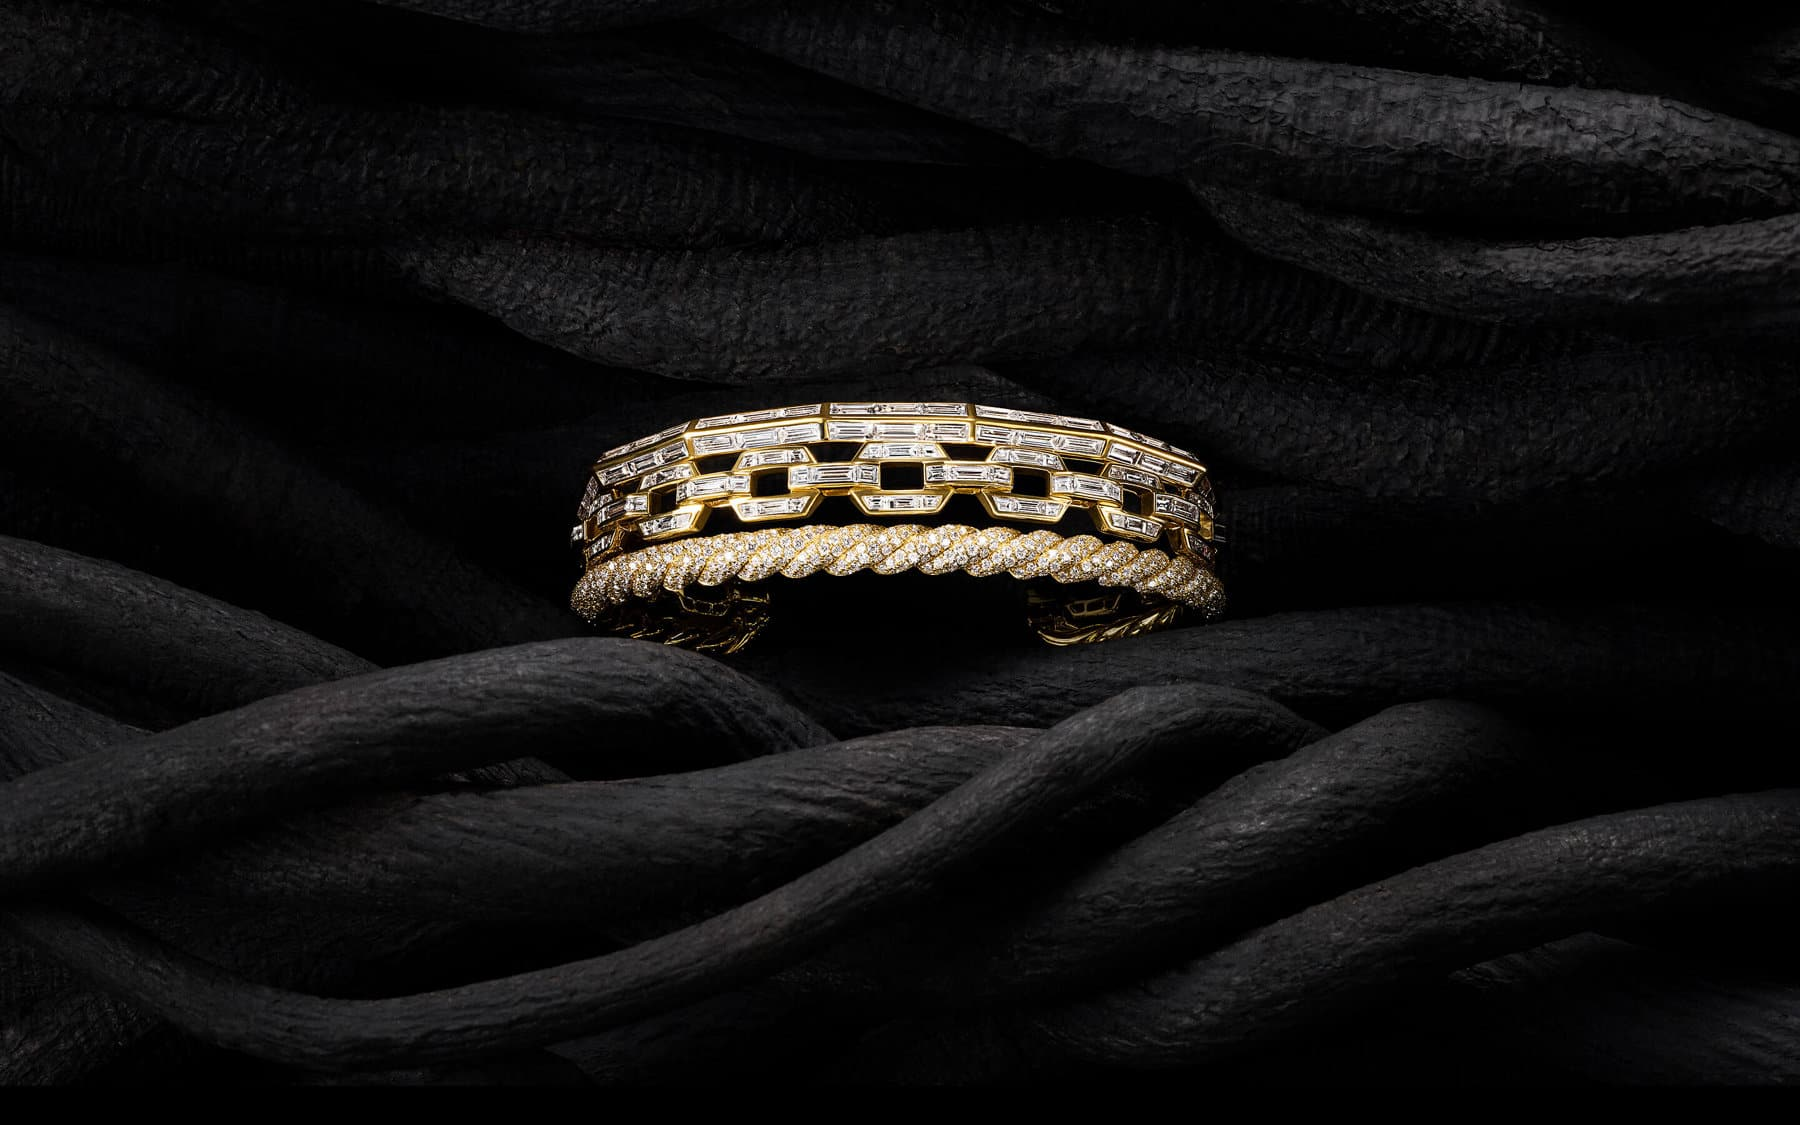 Une photo couleur montre un bracelet de manchette David Yurman High Jewelry Stax disposé entre des vignes de couleur noire. La manchette à trois rangs est faite d'or jaune 18 carats incrusté d'un pavé de diamants  blancs et de diamants blancs taille baguette, et combine une rangée de métal facetté avec une rangée de chaînettes ovales et une rangée de bracelet Cable.